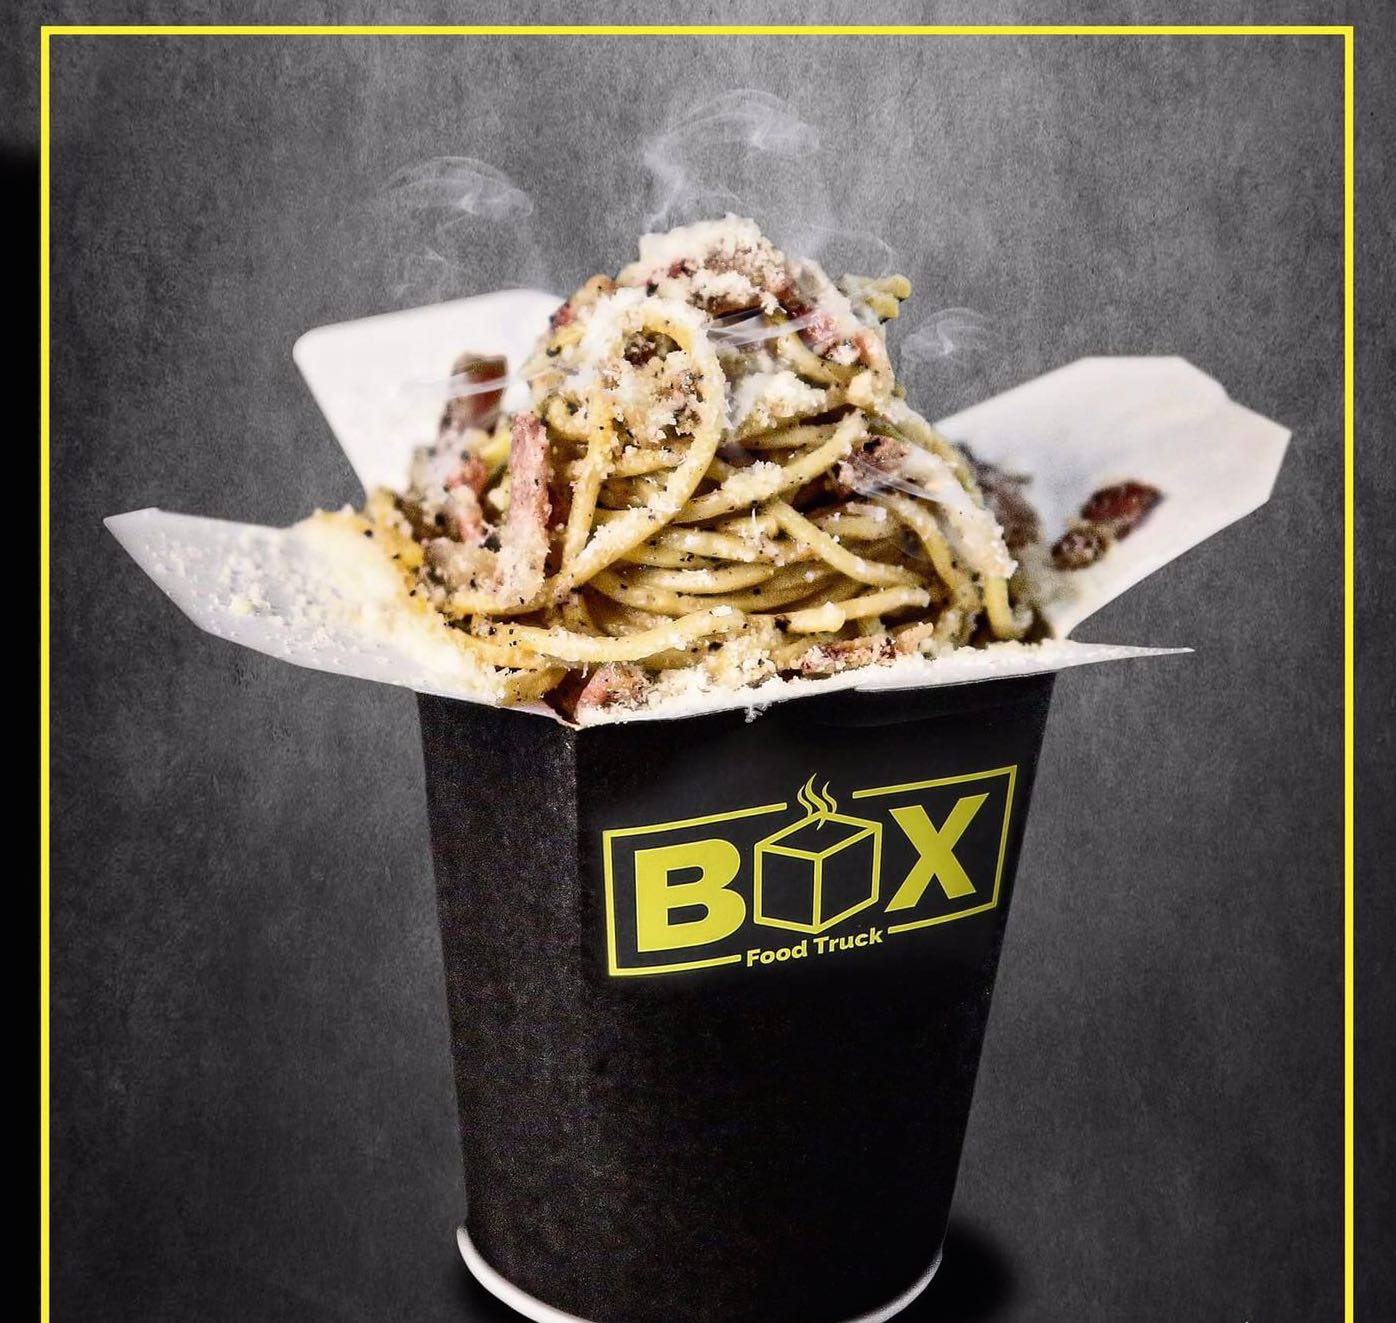 Box Roma food truck Prati  Churrasco e pasta alla gricia street food